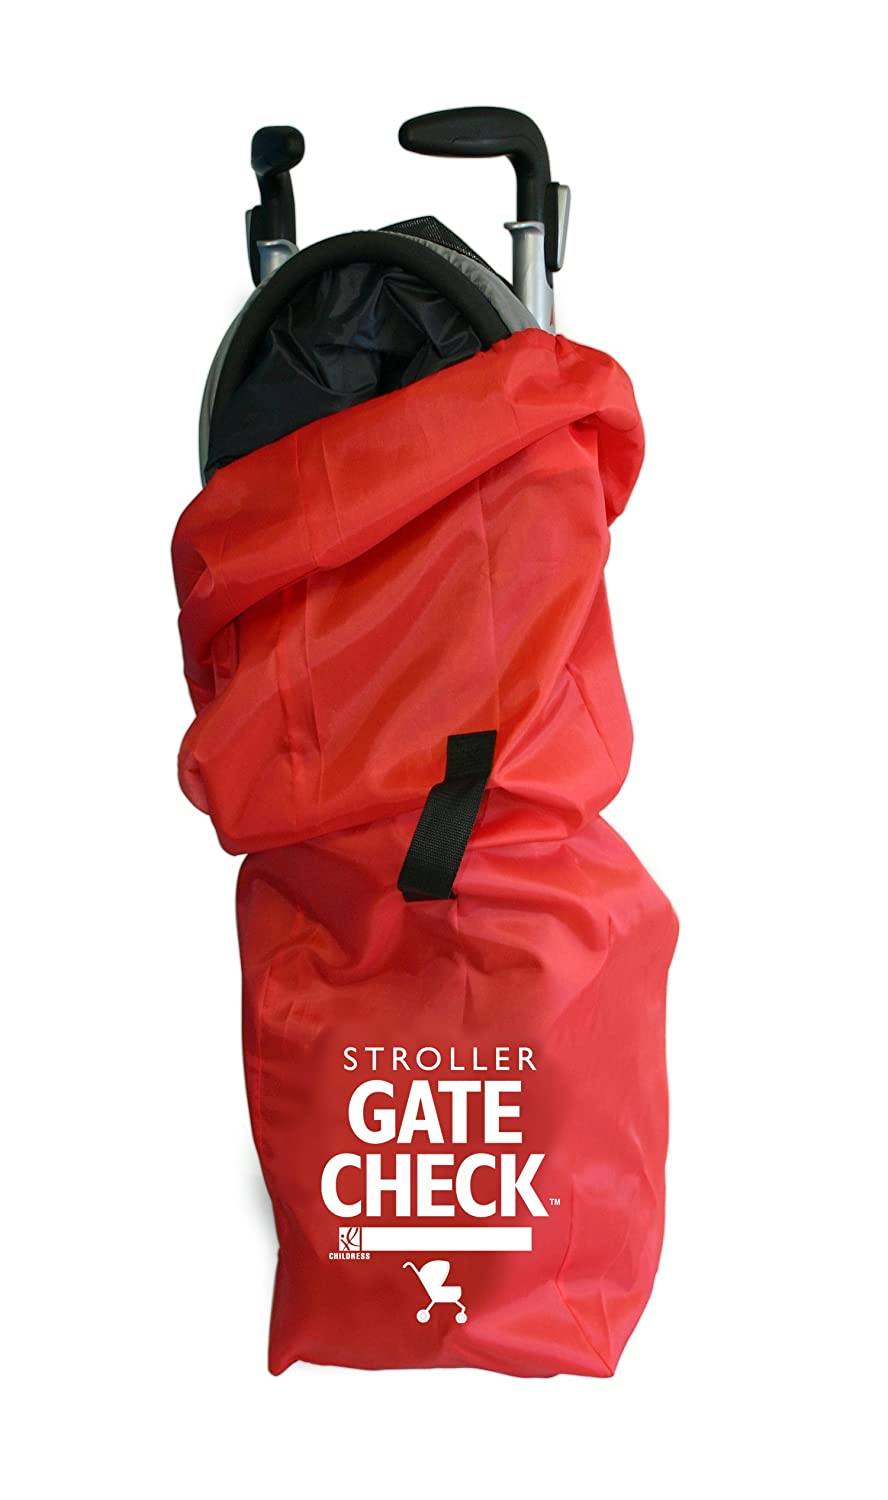 J.L. Childress Gate Check Bag for Single Umbrella Strollers, Durable and Lightweight, Water-Resistant, Drawstring Closure with Adjustable Lock, Webbing Handle, Includes Stretch Zipper Pouch, Red : Baby Stroller Travel Bags : Baby